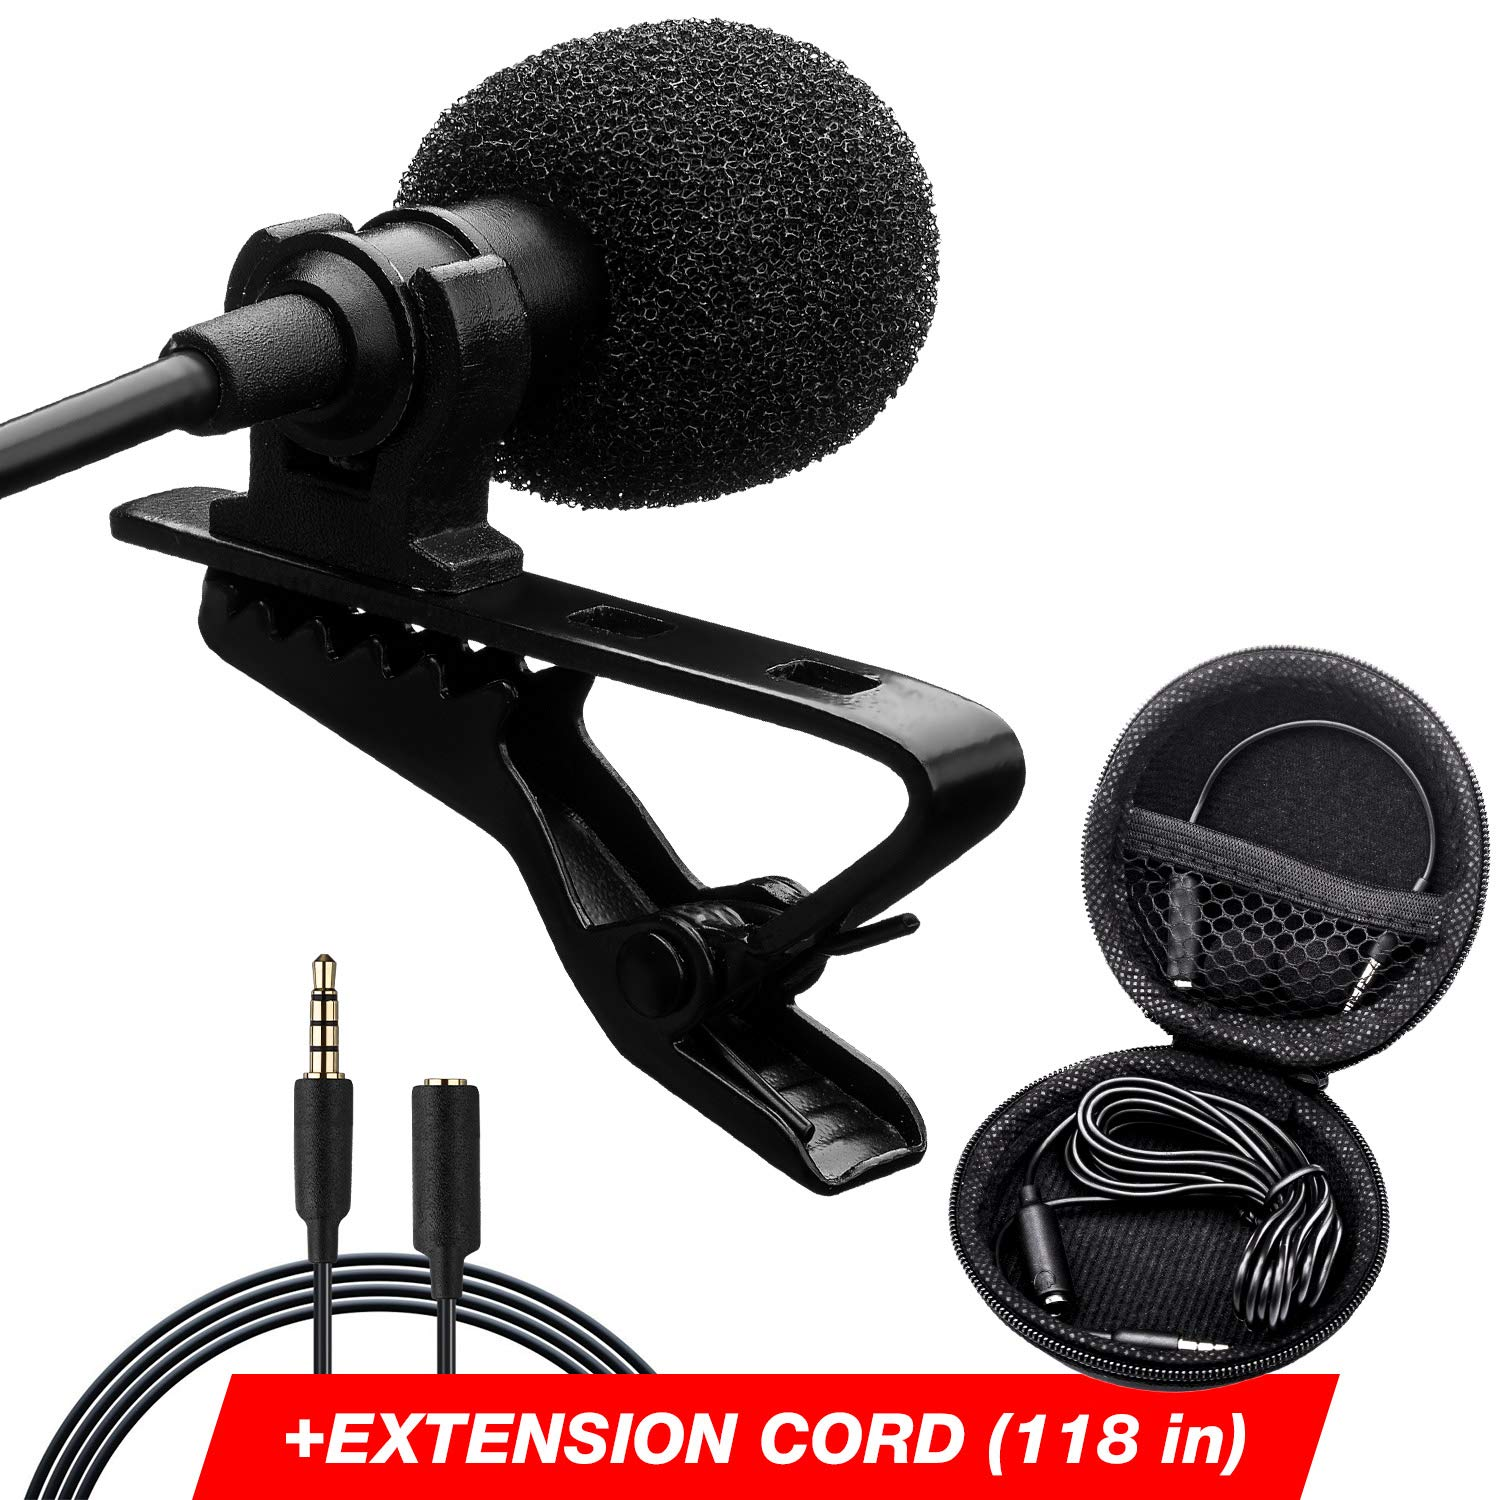 Professional Lavalier Lapel Microphone - Long Cord Lapel Mic - Iphone Microphone for Podcast YouTube Recording Interview Voice Dictation Speech - with Easy Clip-On System by GetJets